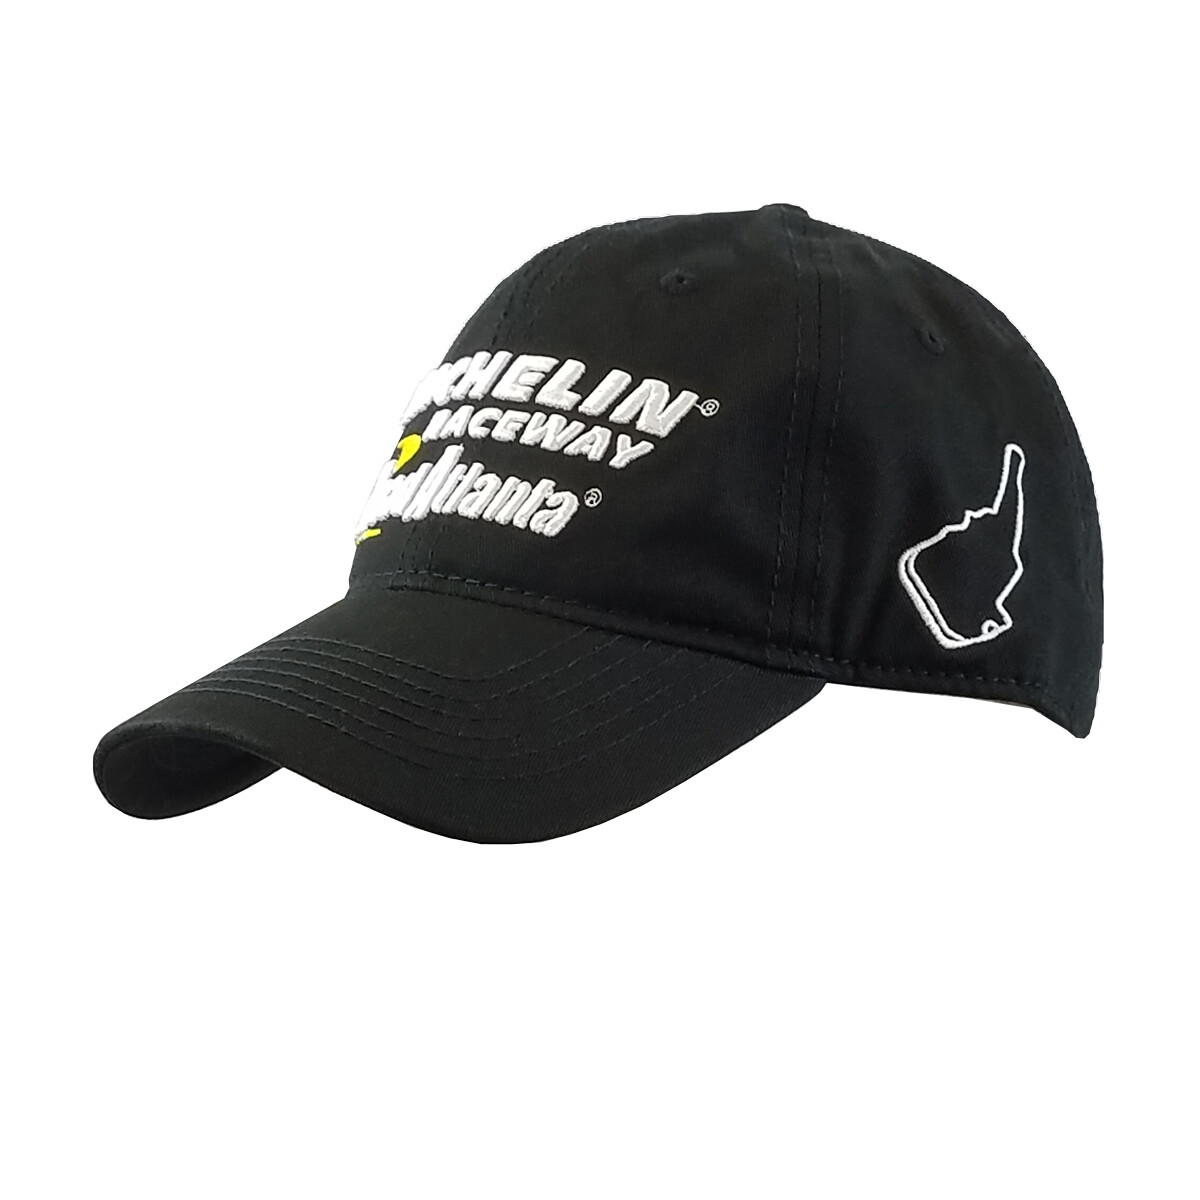 Michelin Raceway Road Atlanta Dad Hat - Black